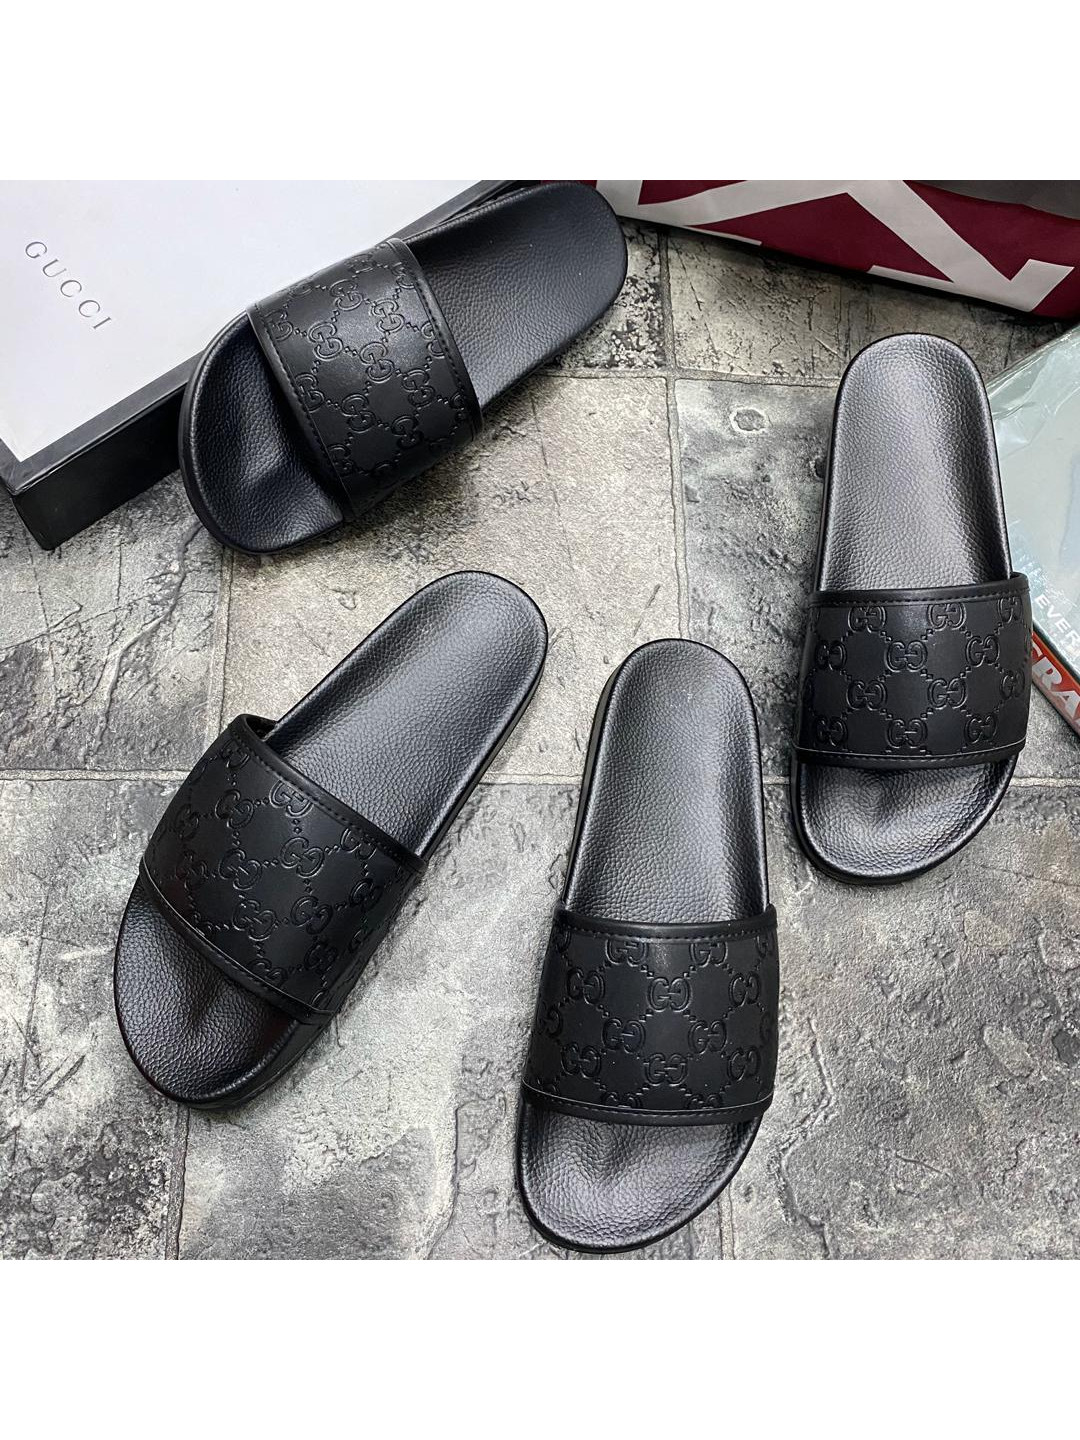 Buy New Unisex Gucci Slides Slippers Black In Lagos Nigeria On Dexstitches